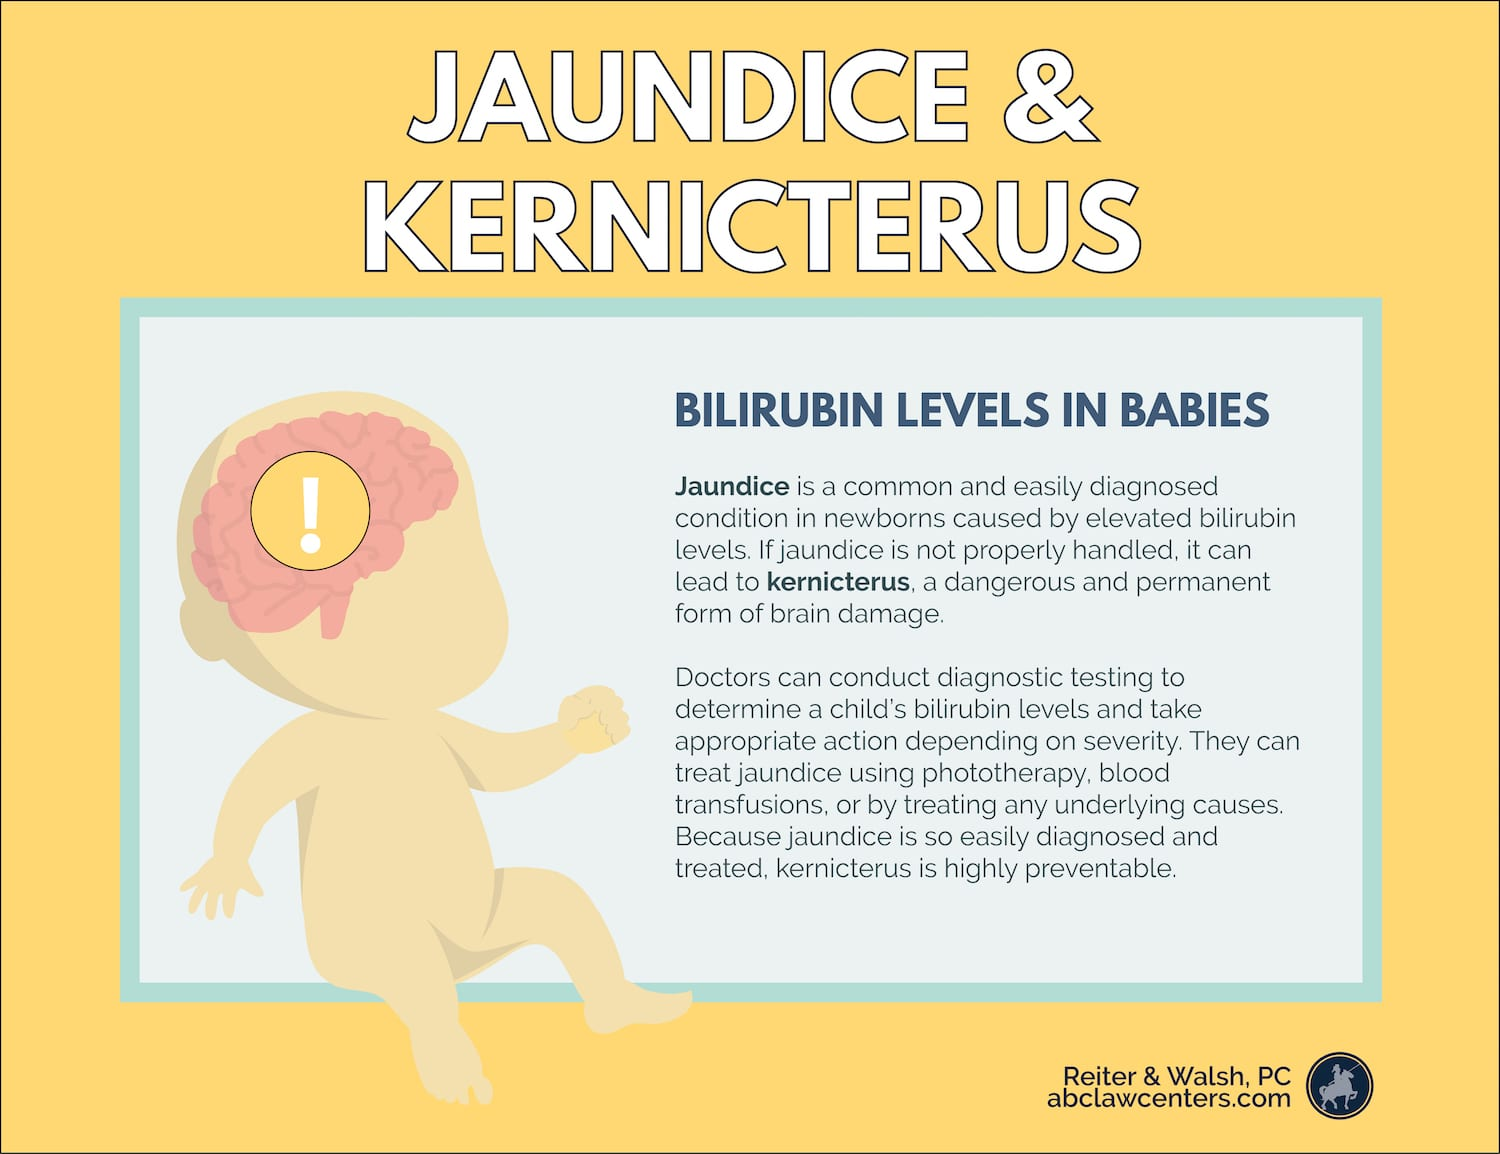 Jaundice and Kernicterus in Babies